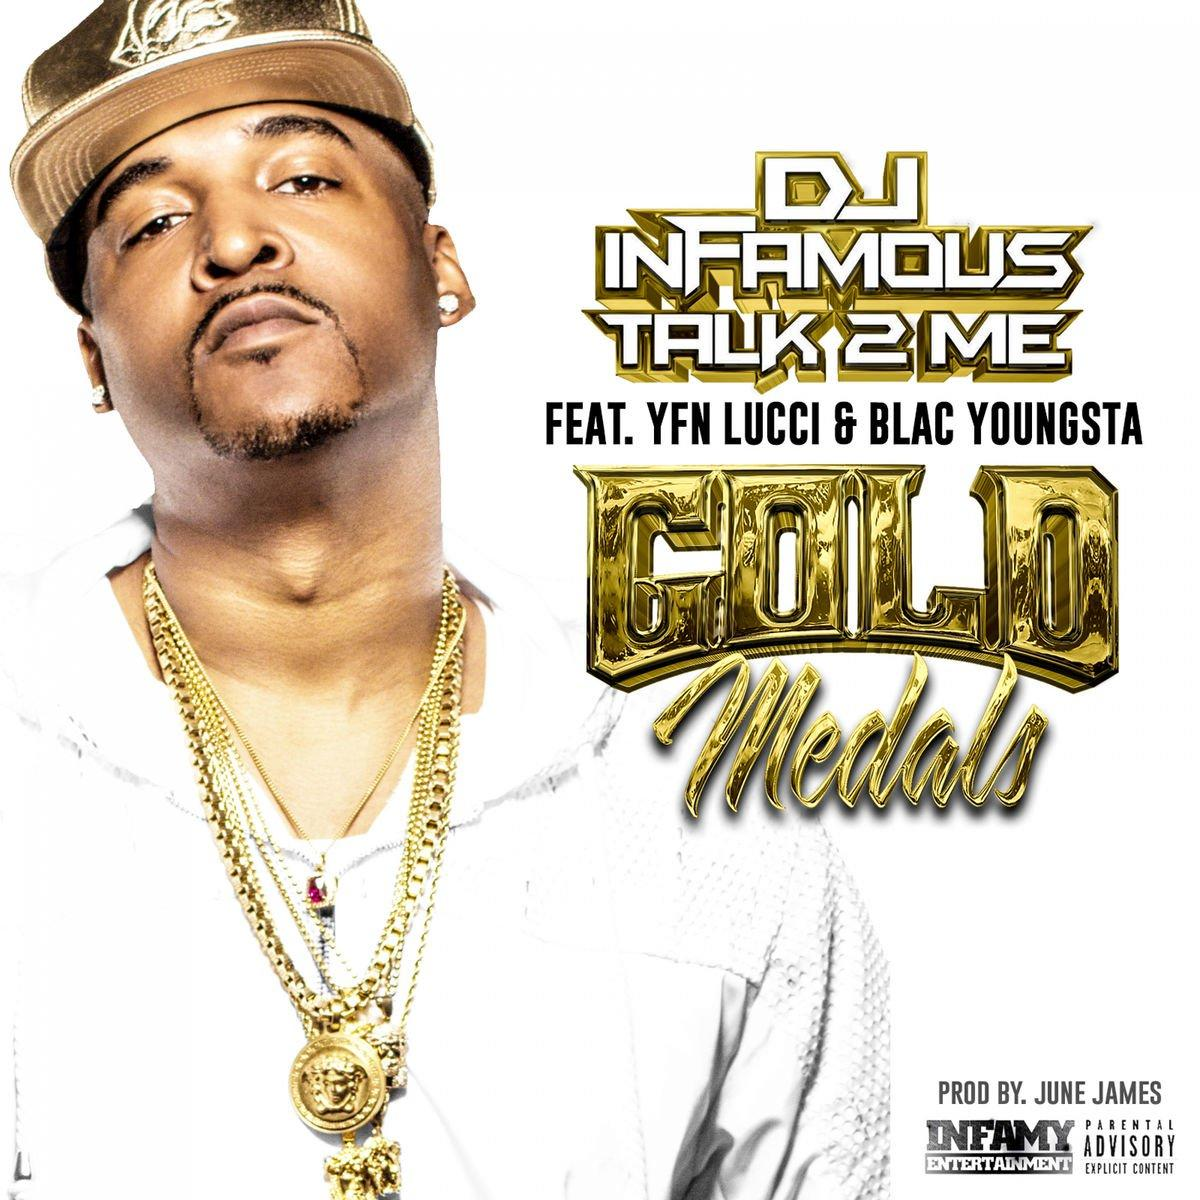 DJ Infamous Links Up With YFN Lucci & Blac Youngsta On